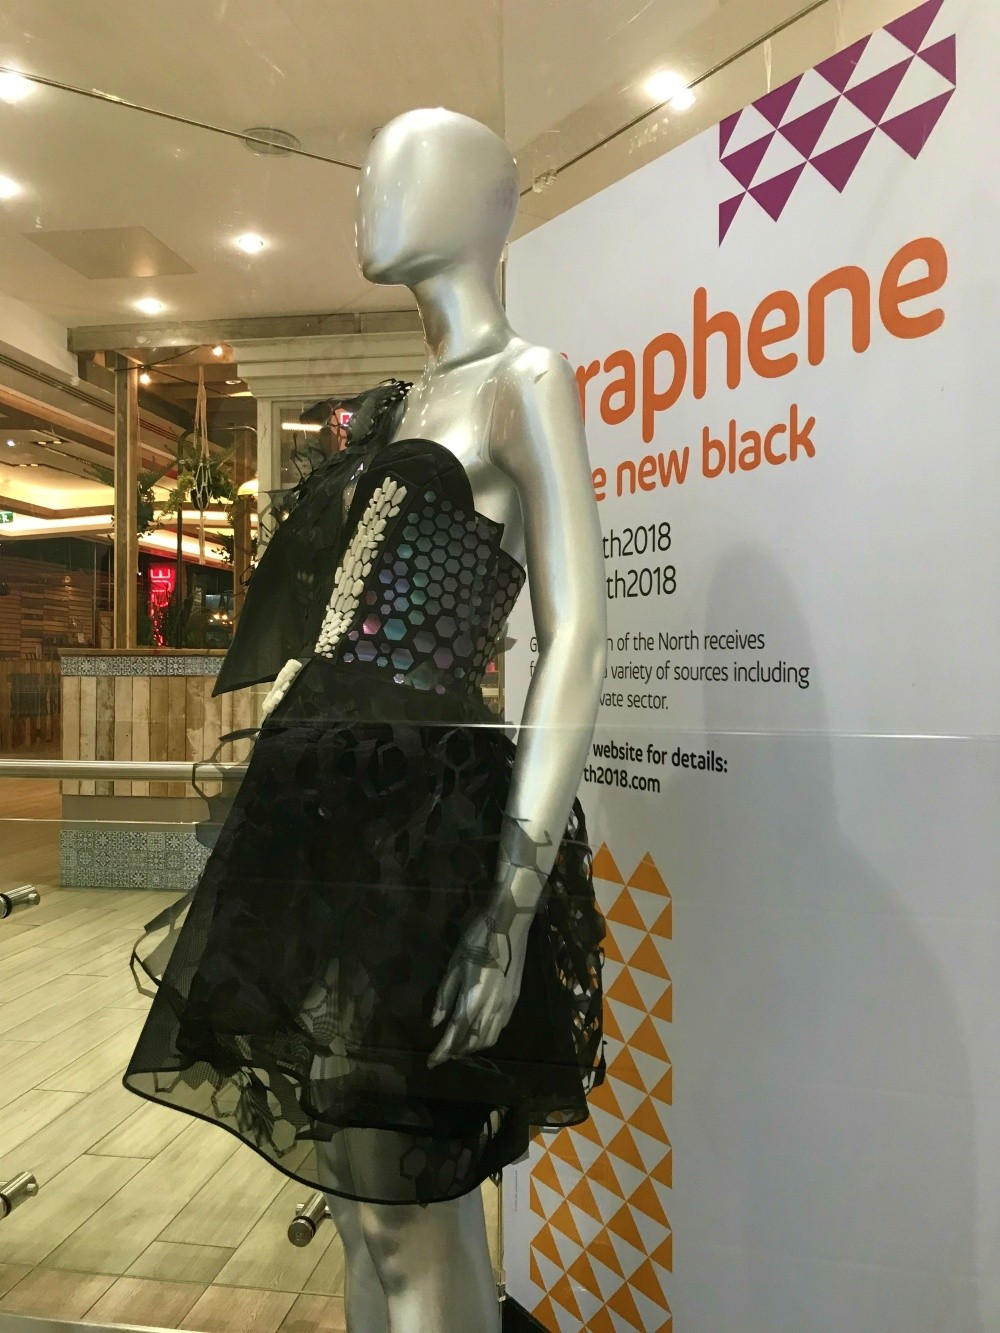 Graphine Dress - Great Exhibition of the North Newcastle Photo Heatheronhertravels.com